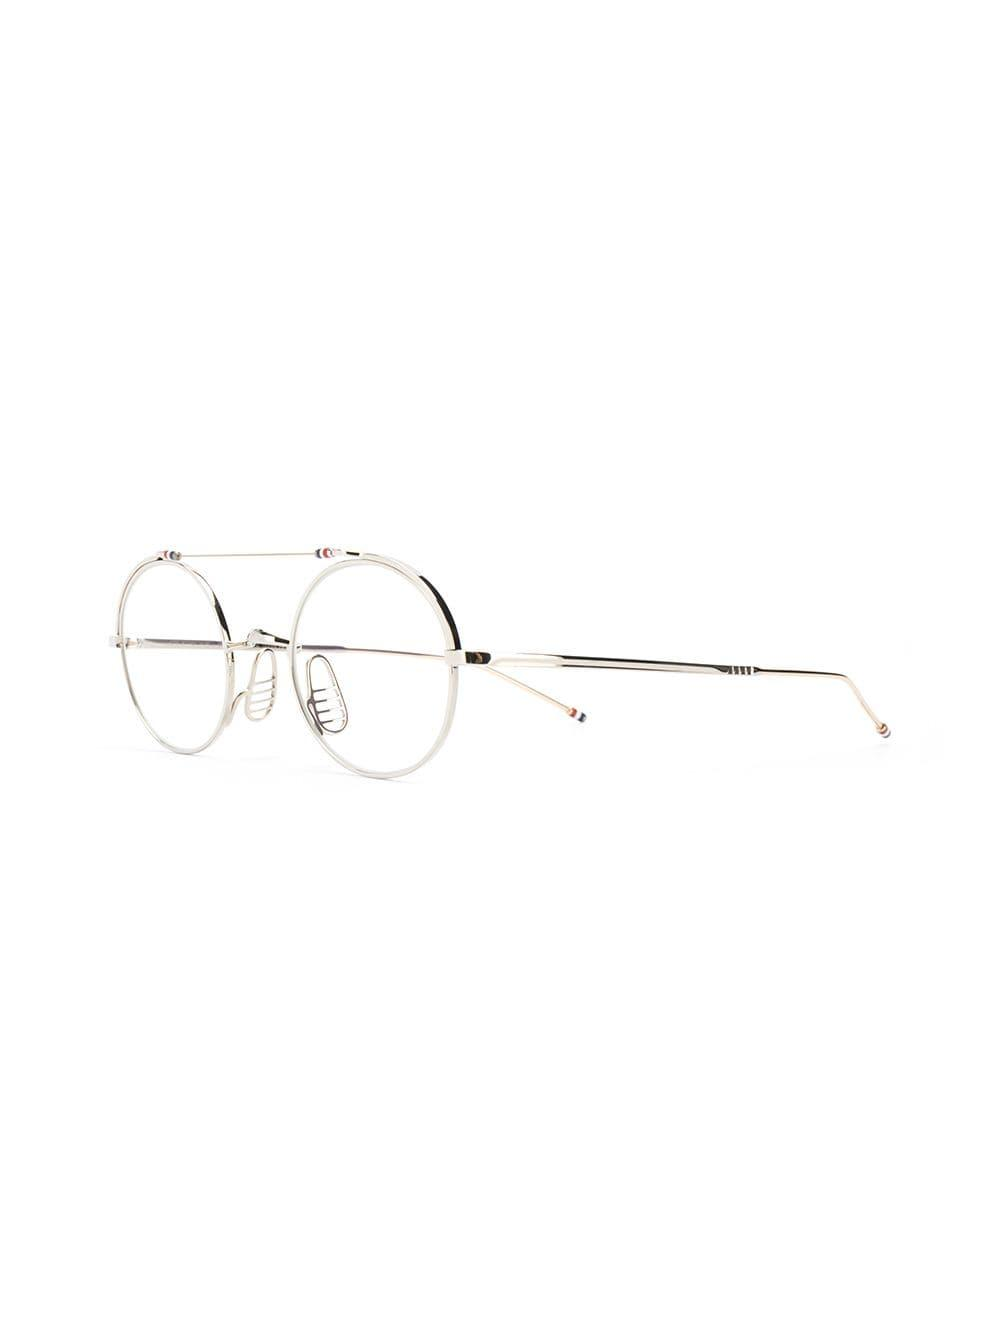 3c8ab72332 Lyst - Thom Browne Round Frame Glasses in Metallic for Men